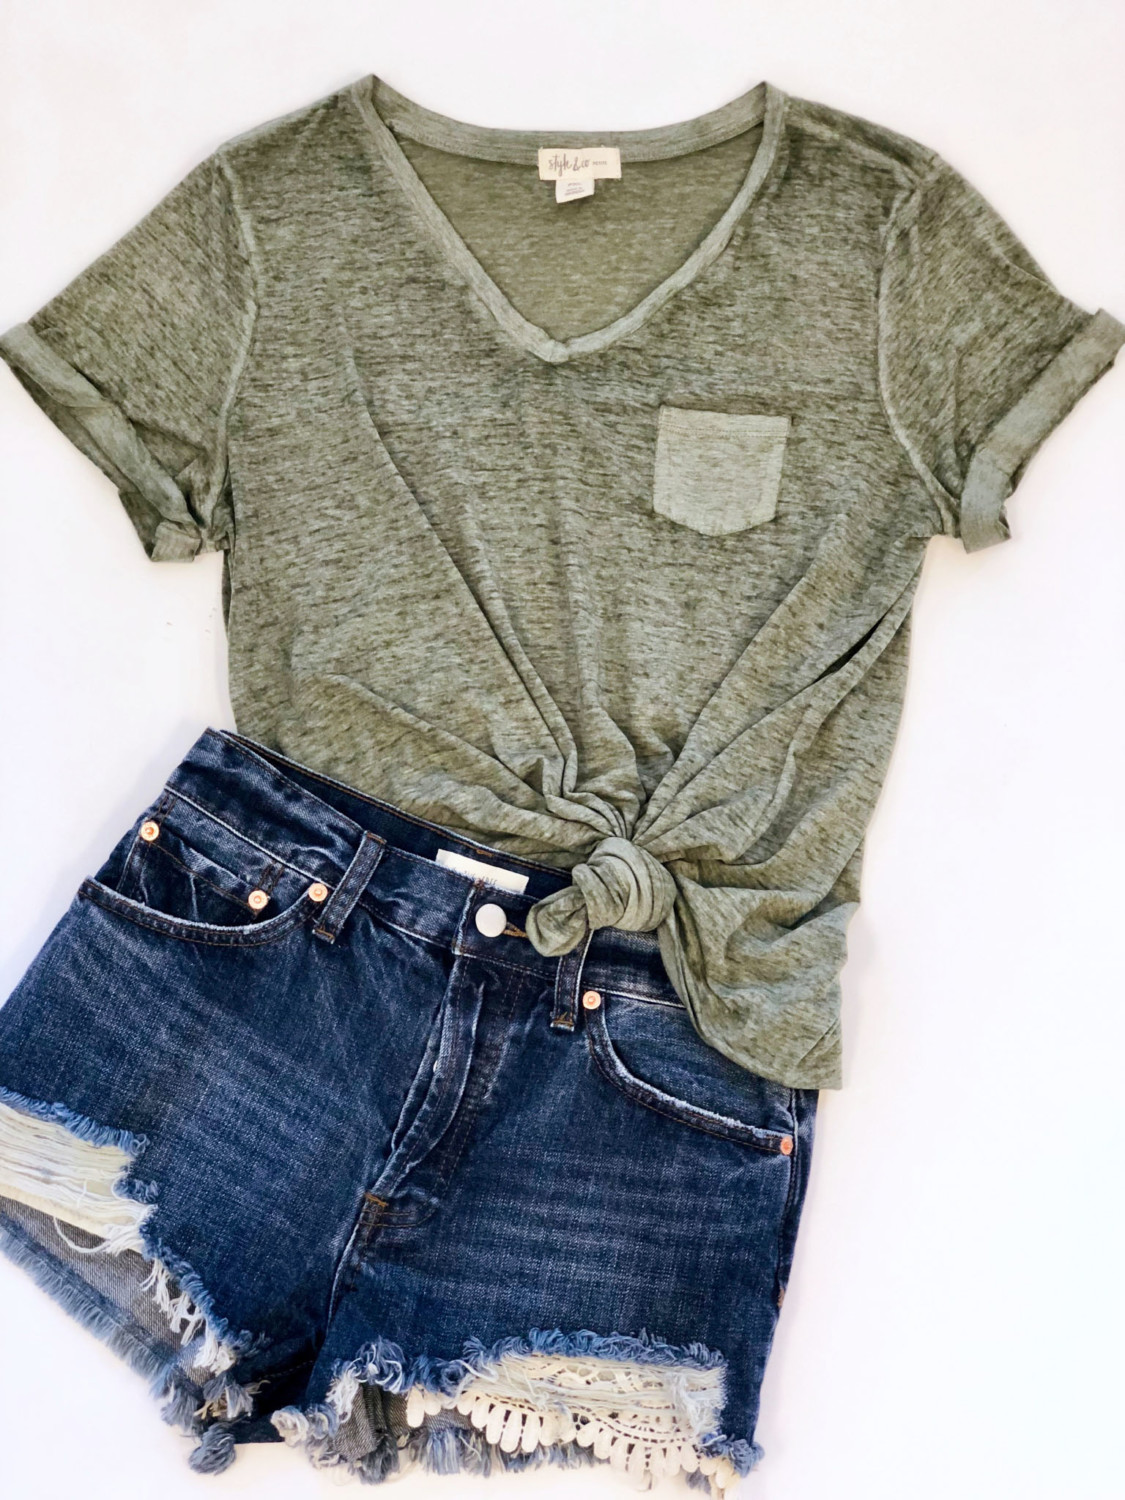 Style & Co Top – Original Retail: $13, CWS: $5